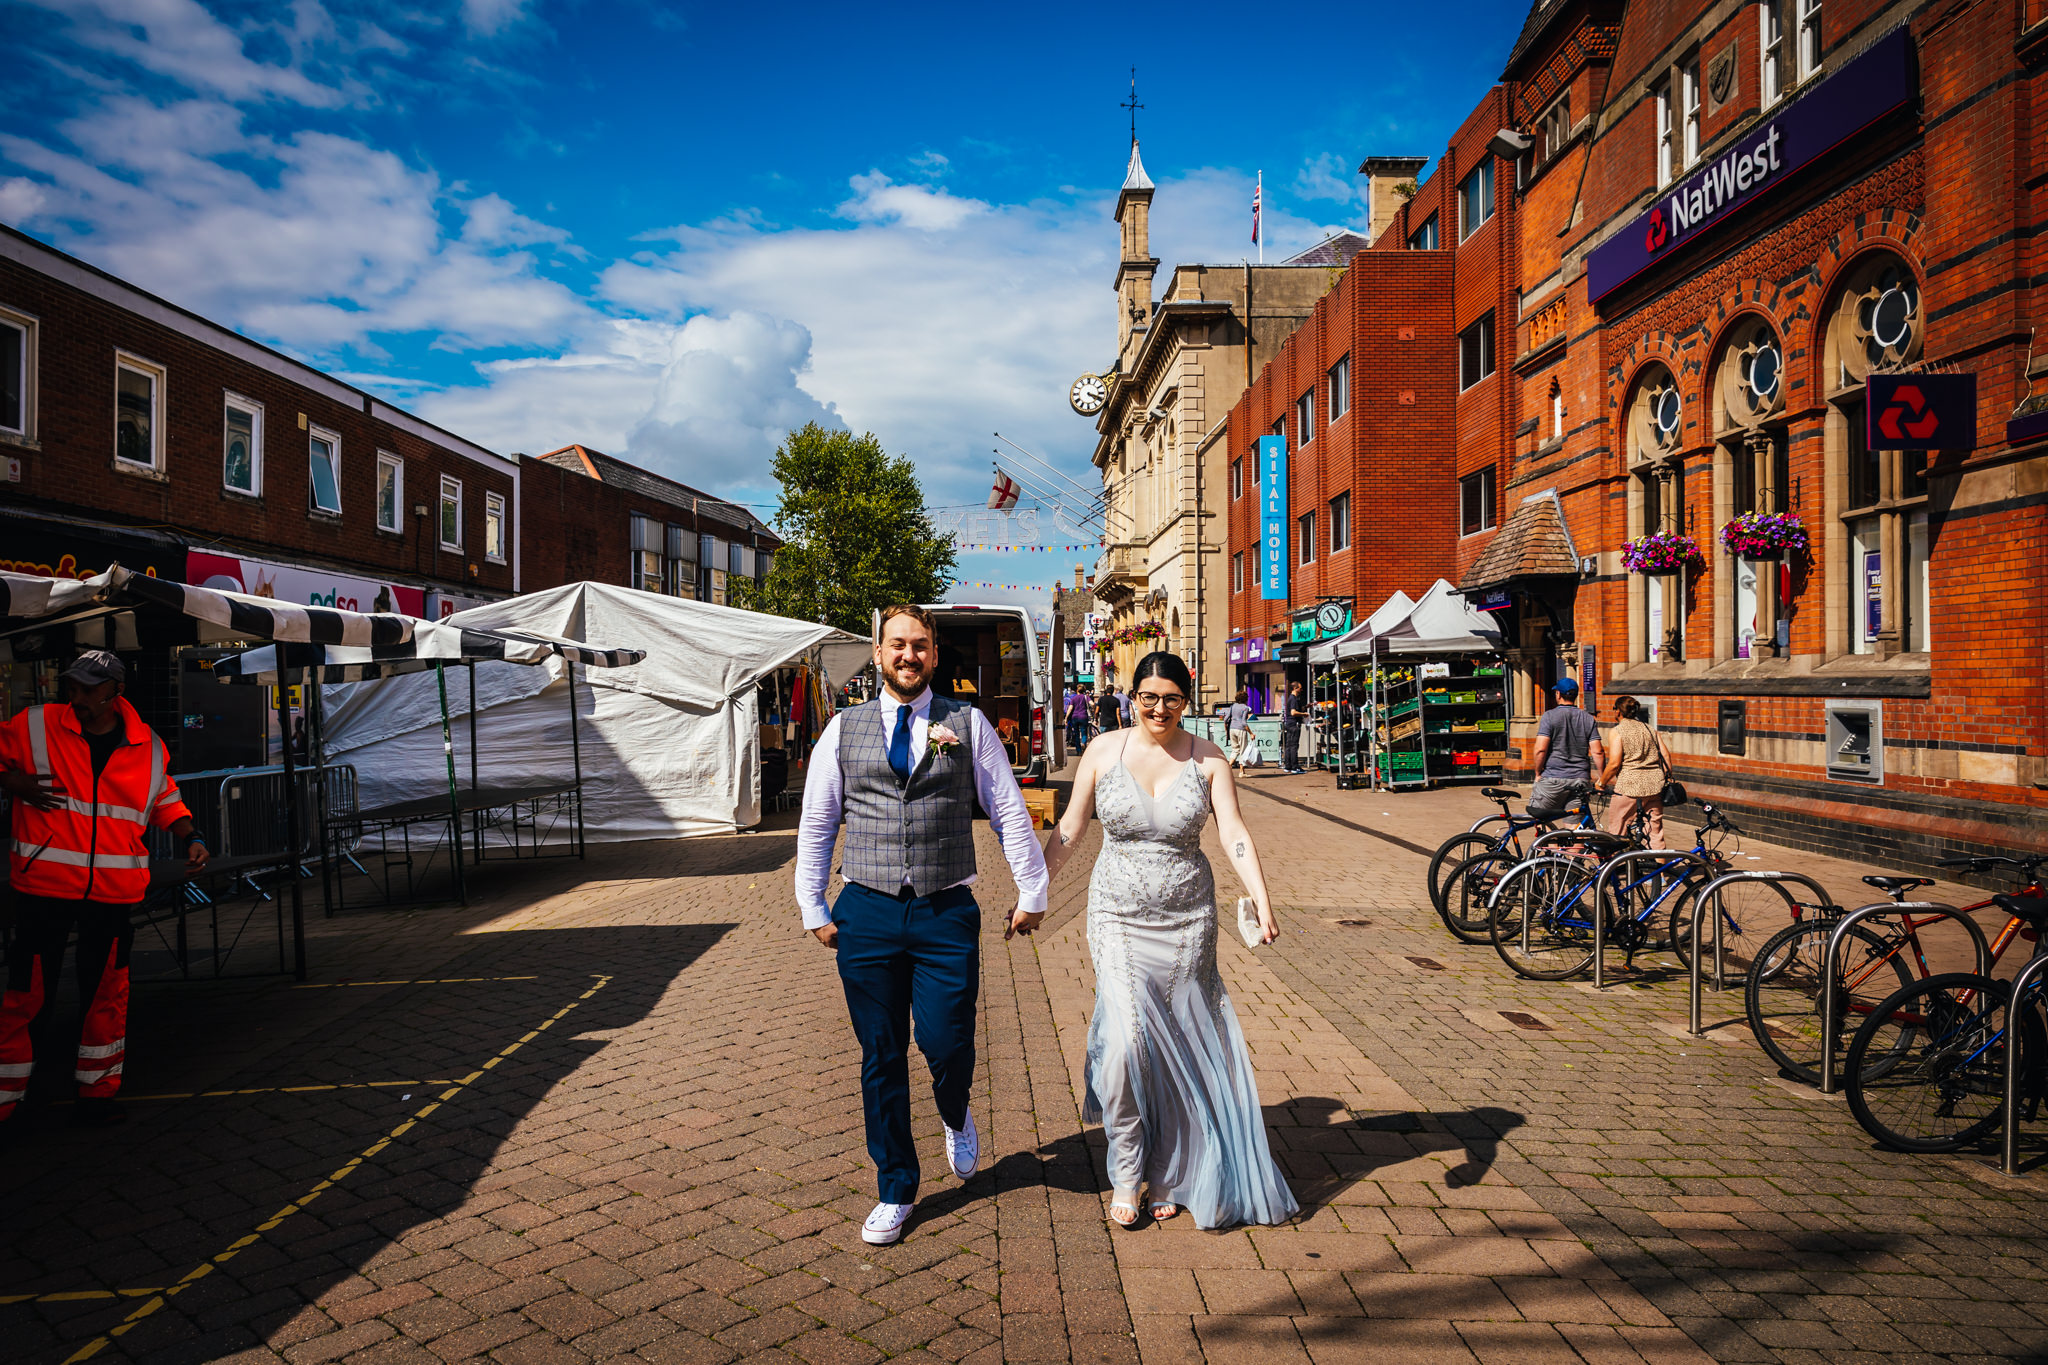 fun wedding photography - Couple walking through town centre on their wedding day. Bride is wearing grey dress and groom is relaxed in converse